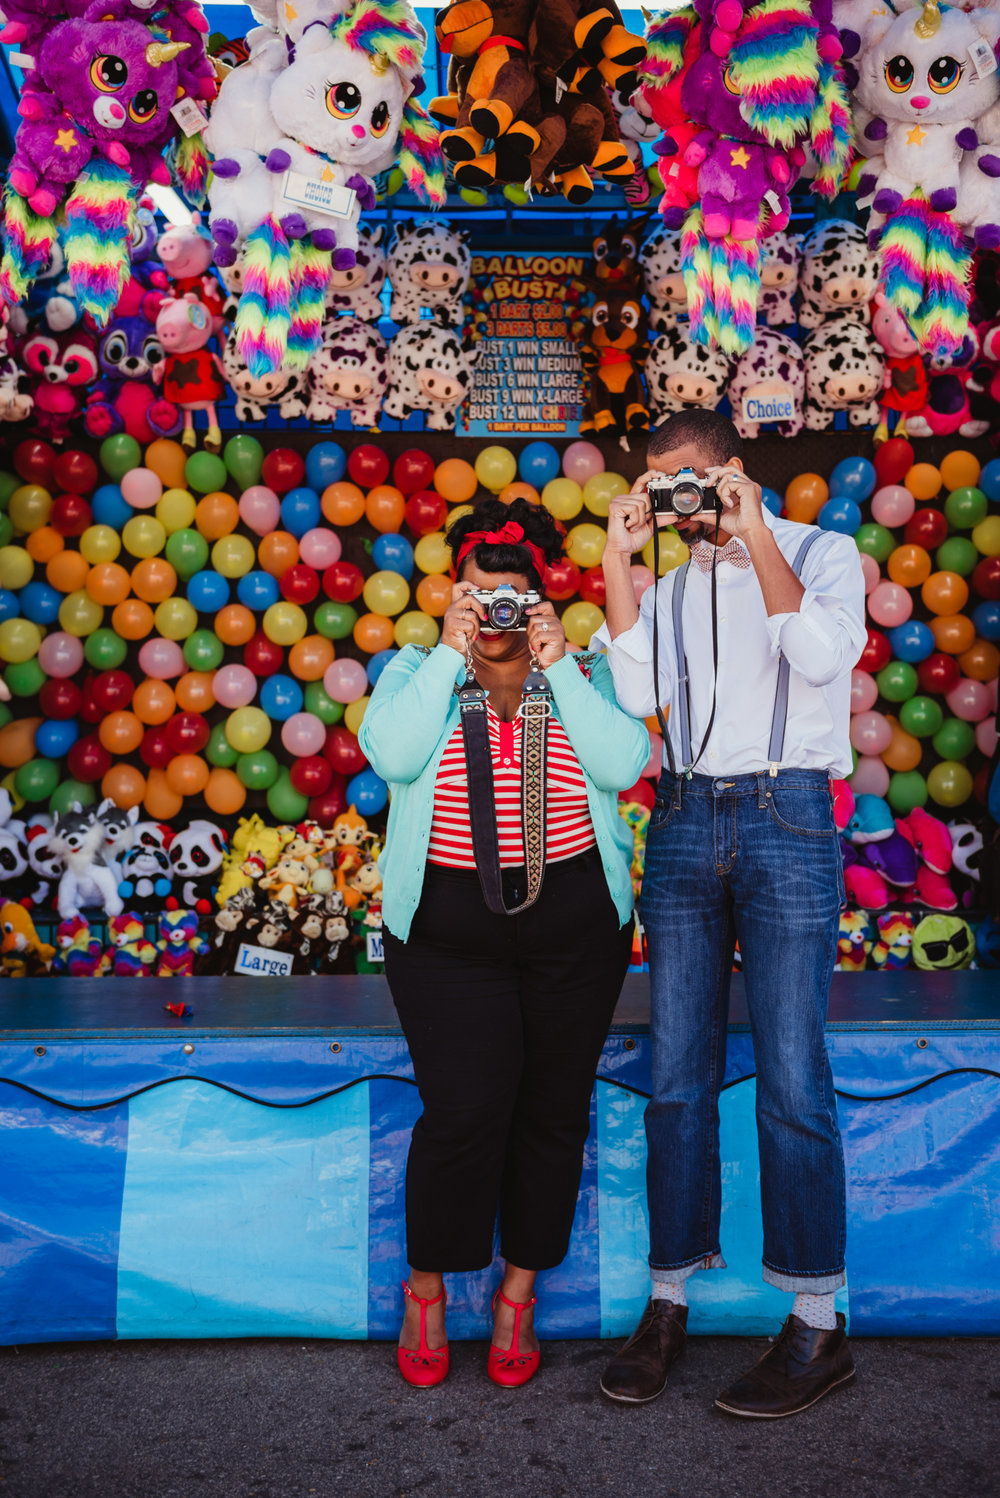 taking-pictures-with-vintage-cameras-at-the-NC-State-fair.jpg